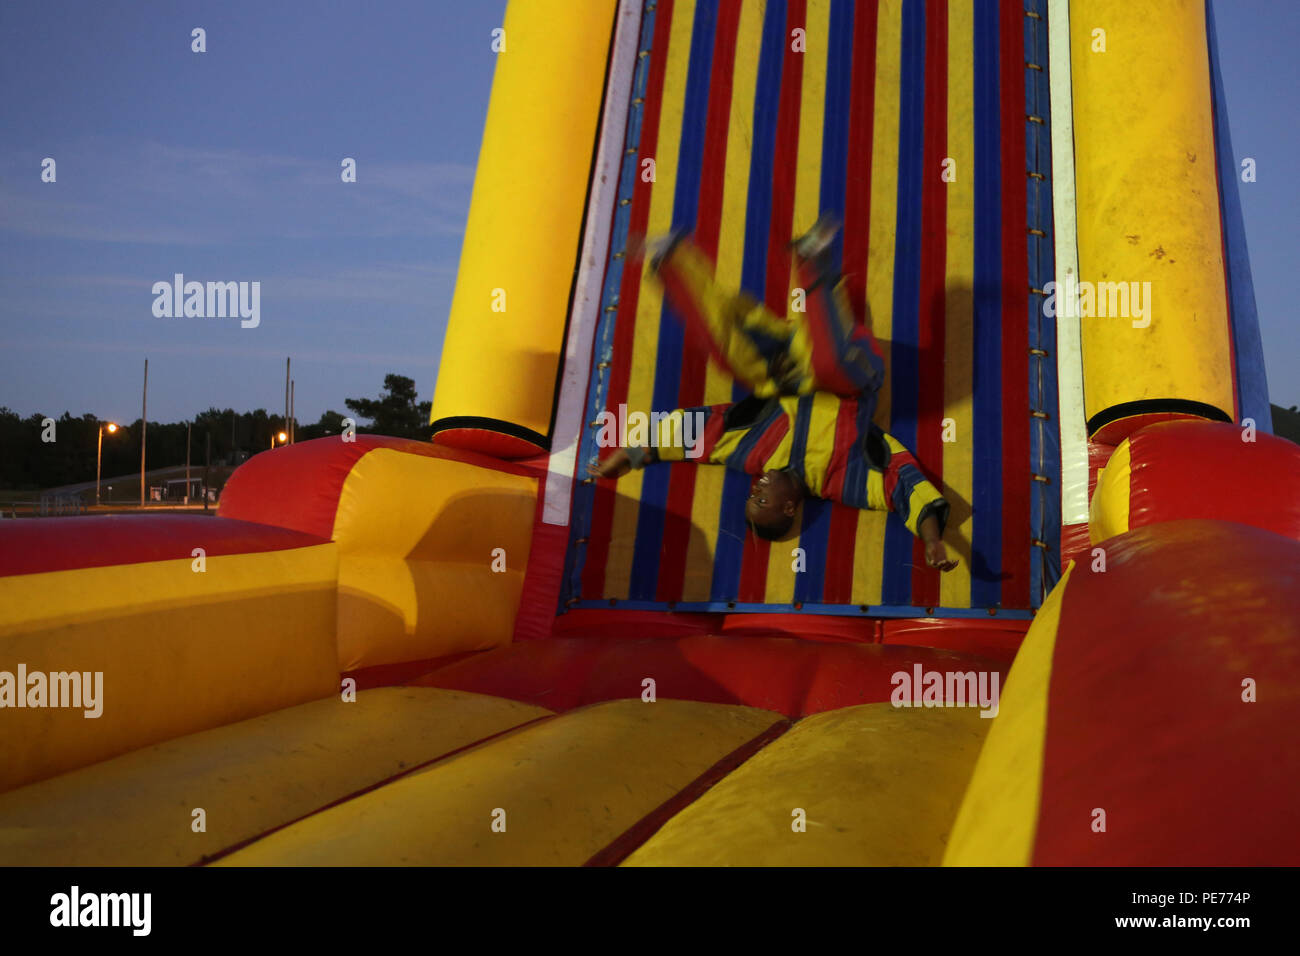 Lance Cpl. Daijon Reason flips through the air before sticking to an inflatable Velcro sticky wall while wearing a Velcro suit during the Fall Family Festival hosted by Marine Air Control Squadron 2 at Marine Corps Air Station Cherry Point, N.C., Oct. 22, 2015. More than 100 Marines, Sailors and family members gathered to kick off the fall season with a chili cook-off and costume contest as well as games, a movie and a bonfire. Reason is a tactical air defense controller with MACS-2. (U.S. Marine Corps photo by Cpl. N.W. Huertas/Released) - Stock Image